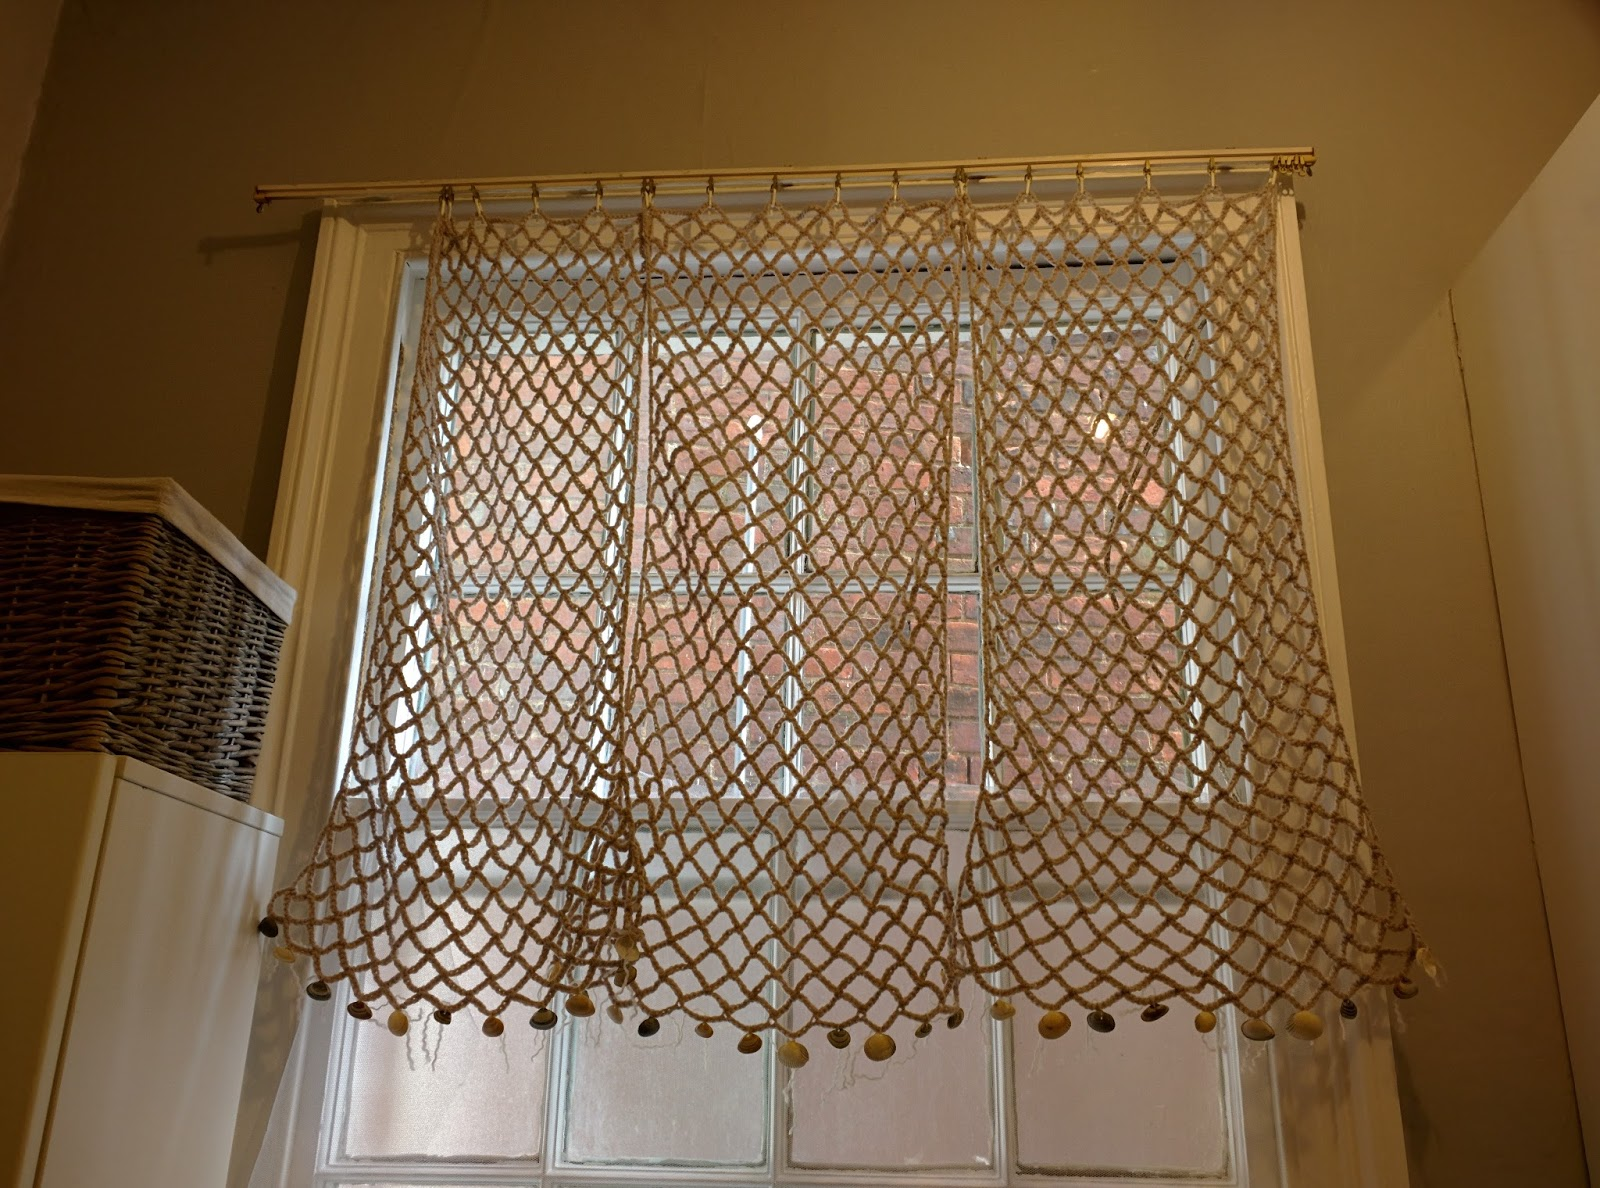 Using A Fishnet Like Stitch I Crocheted 3 Panels To Mimic You Guessed It Fish Nets They Can Be Moved Out Of The Way Individually Allowing Maximise